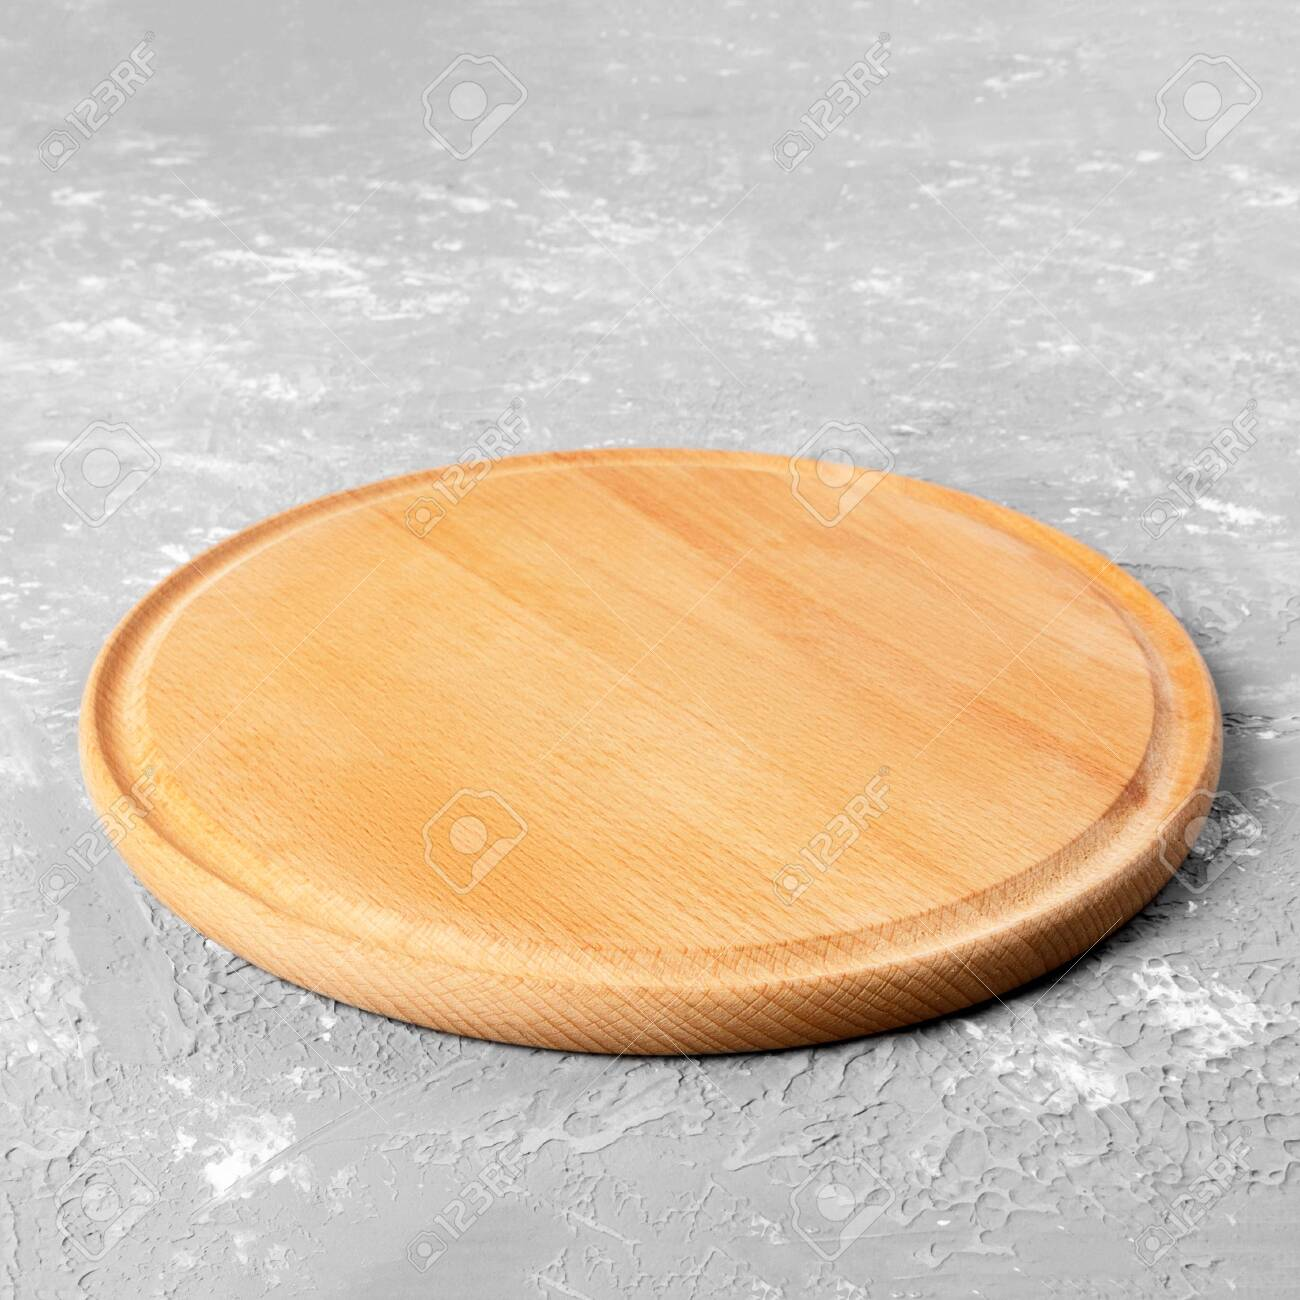 Empty Round Wooden Plate On Textured Table Wood Plate For Food Stock Photo Picture And Royalty Free Image Image 129351111